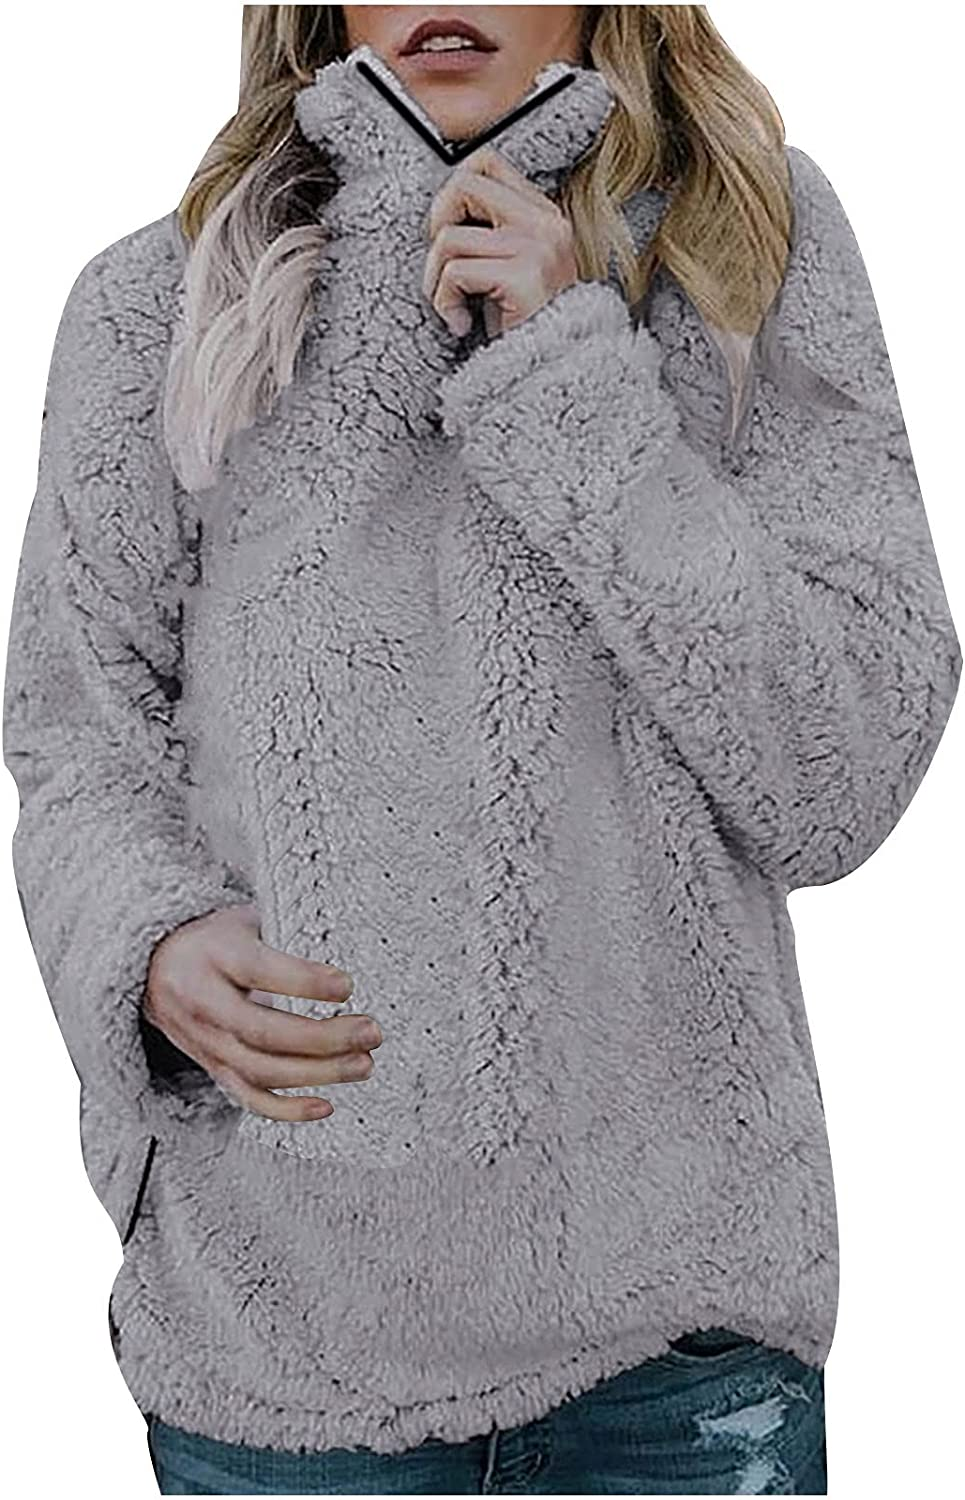 Clearance!! Coat Jacket Women's Autumn and Winter Street Casual Long Sleeve Loose Lapel Plush Top